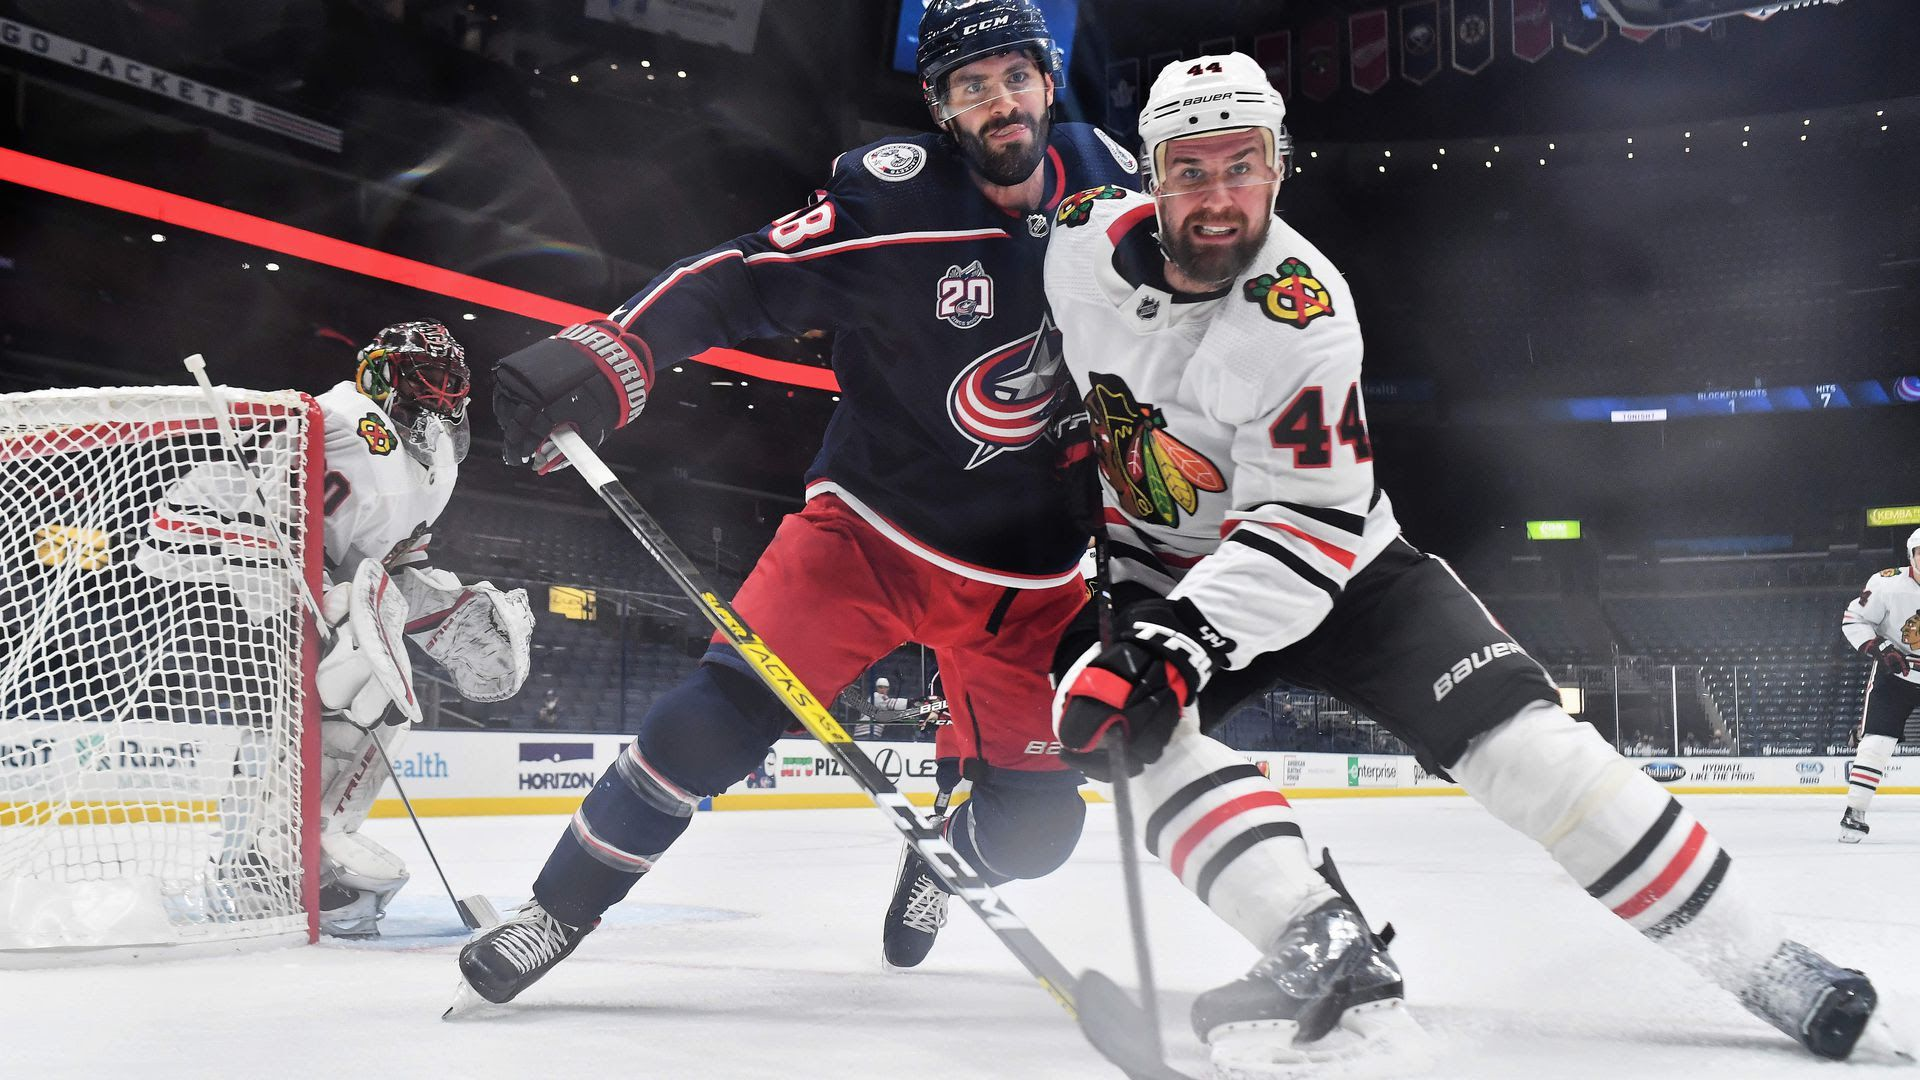 Boone Jenner and a Chicago Blackhawks player battle for position while chasing the puck during a Feb. 25, 2021 game at Nationwide Arena.